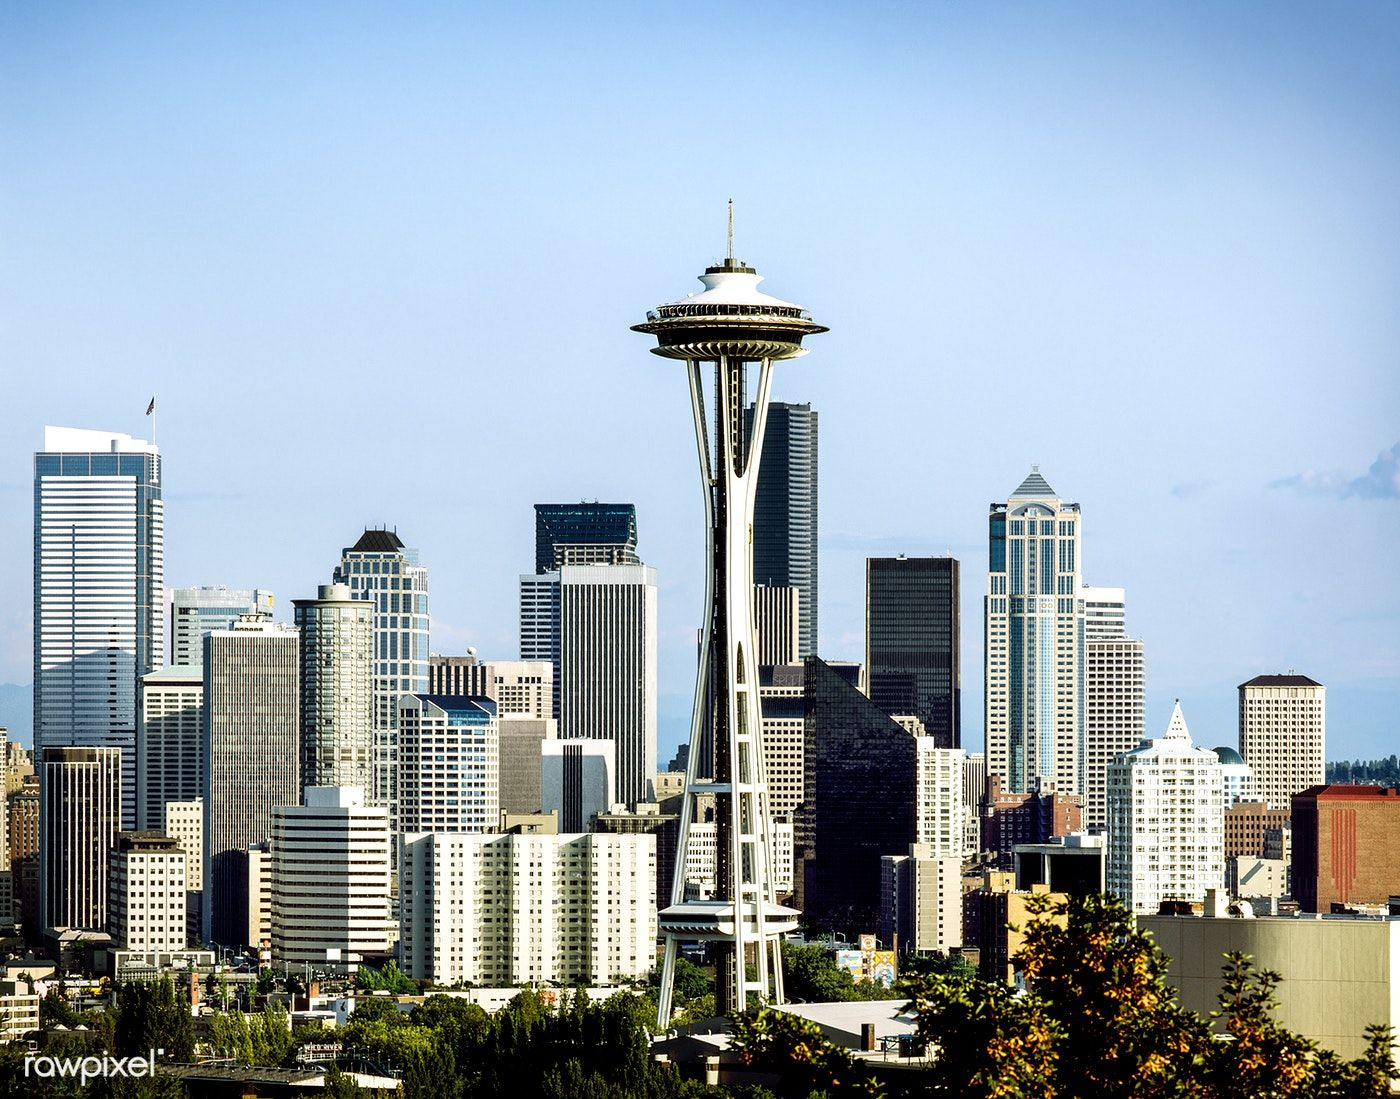 Seattle Skyline Featuring The Space Needle Original Image From Carol M Highsmith S America Library Of Congress Collectio Seattle Skyline Skyline Seattle Usa